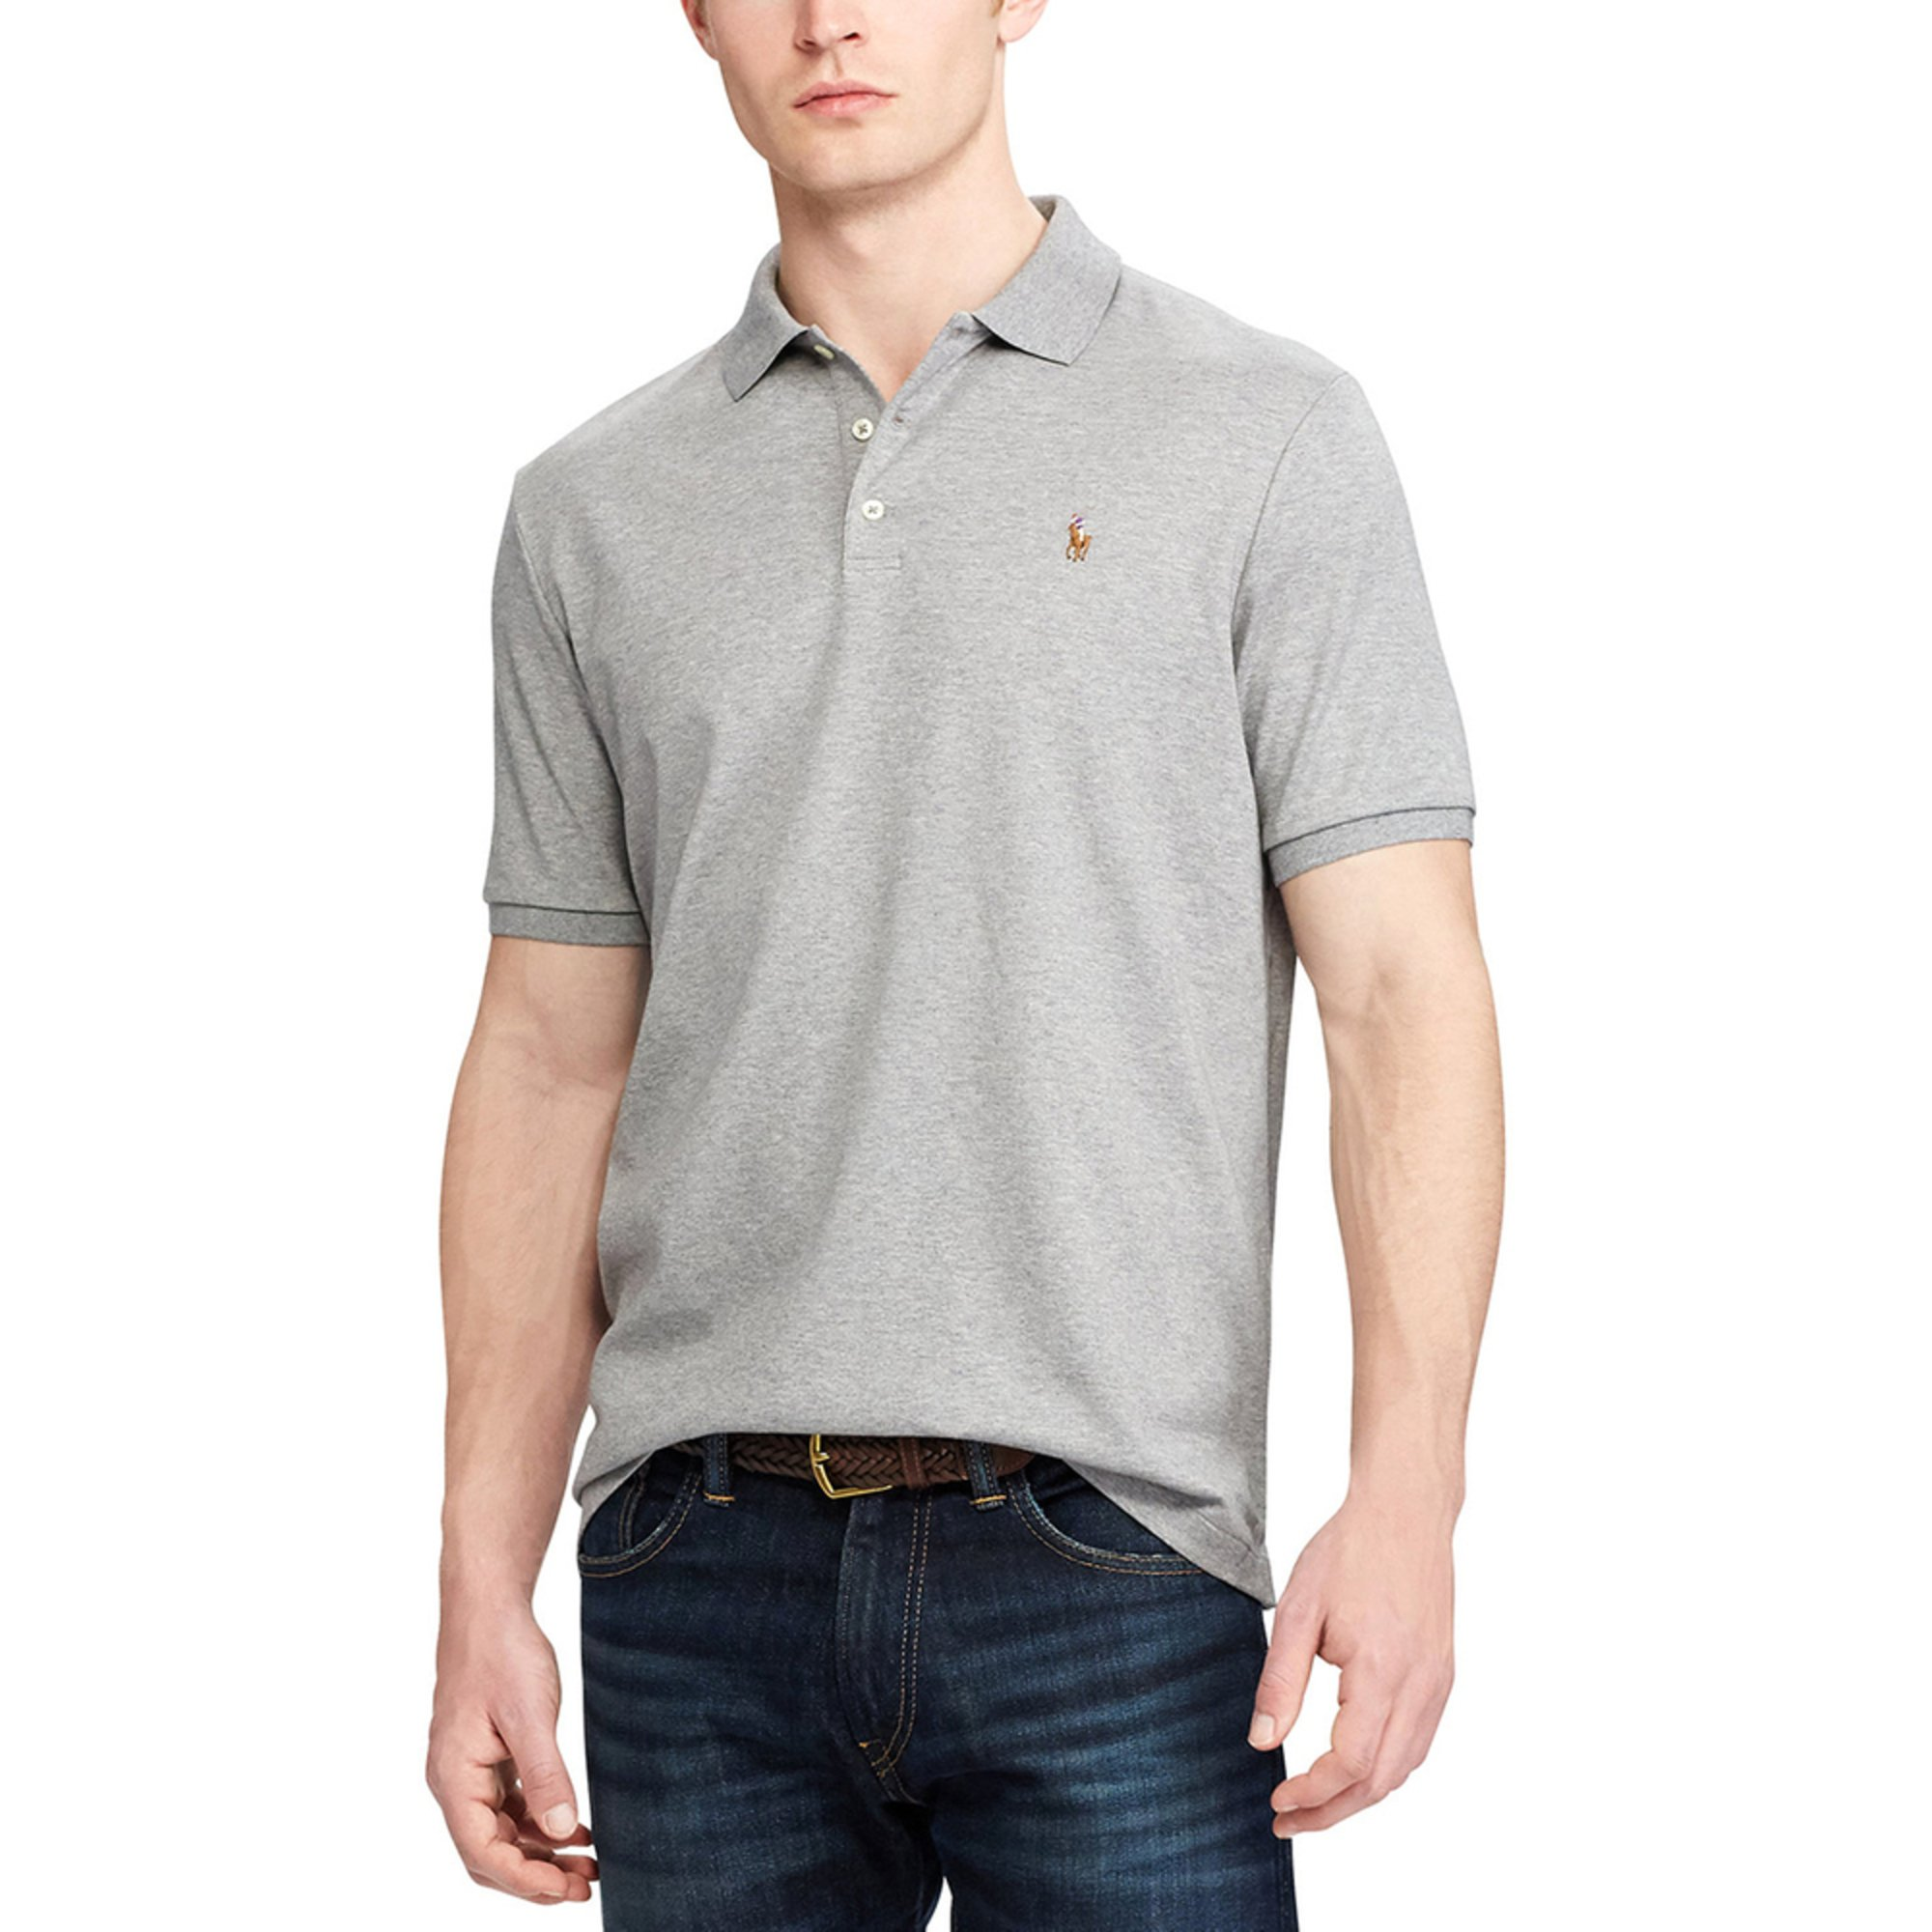 7f33c178 ... best price polo ralph lauren. polo ralph lauren mens short sleeve pima  soft touch c046e